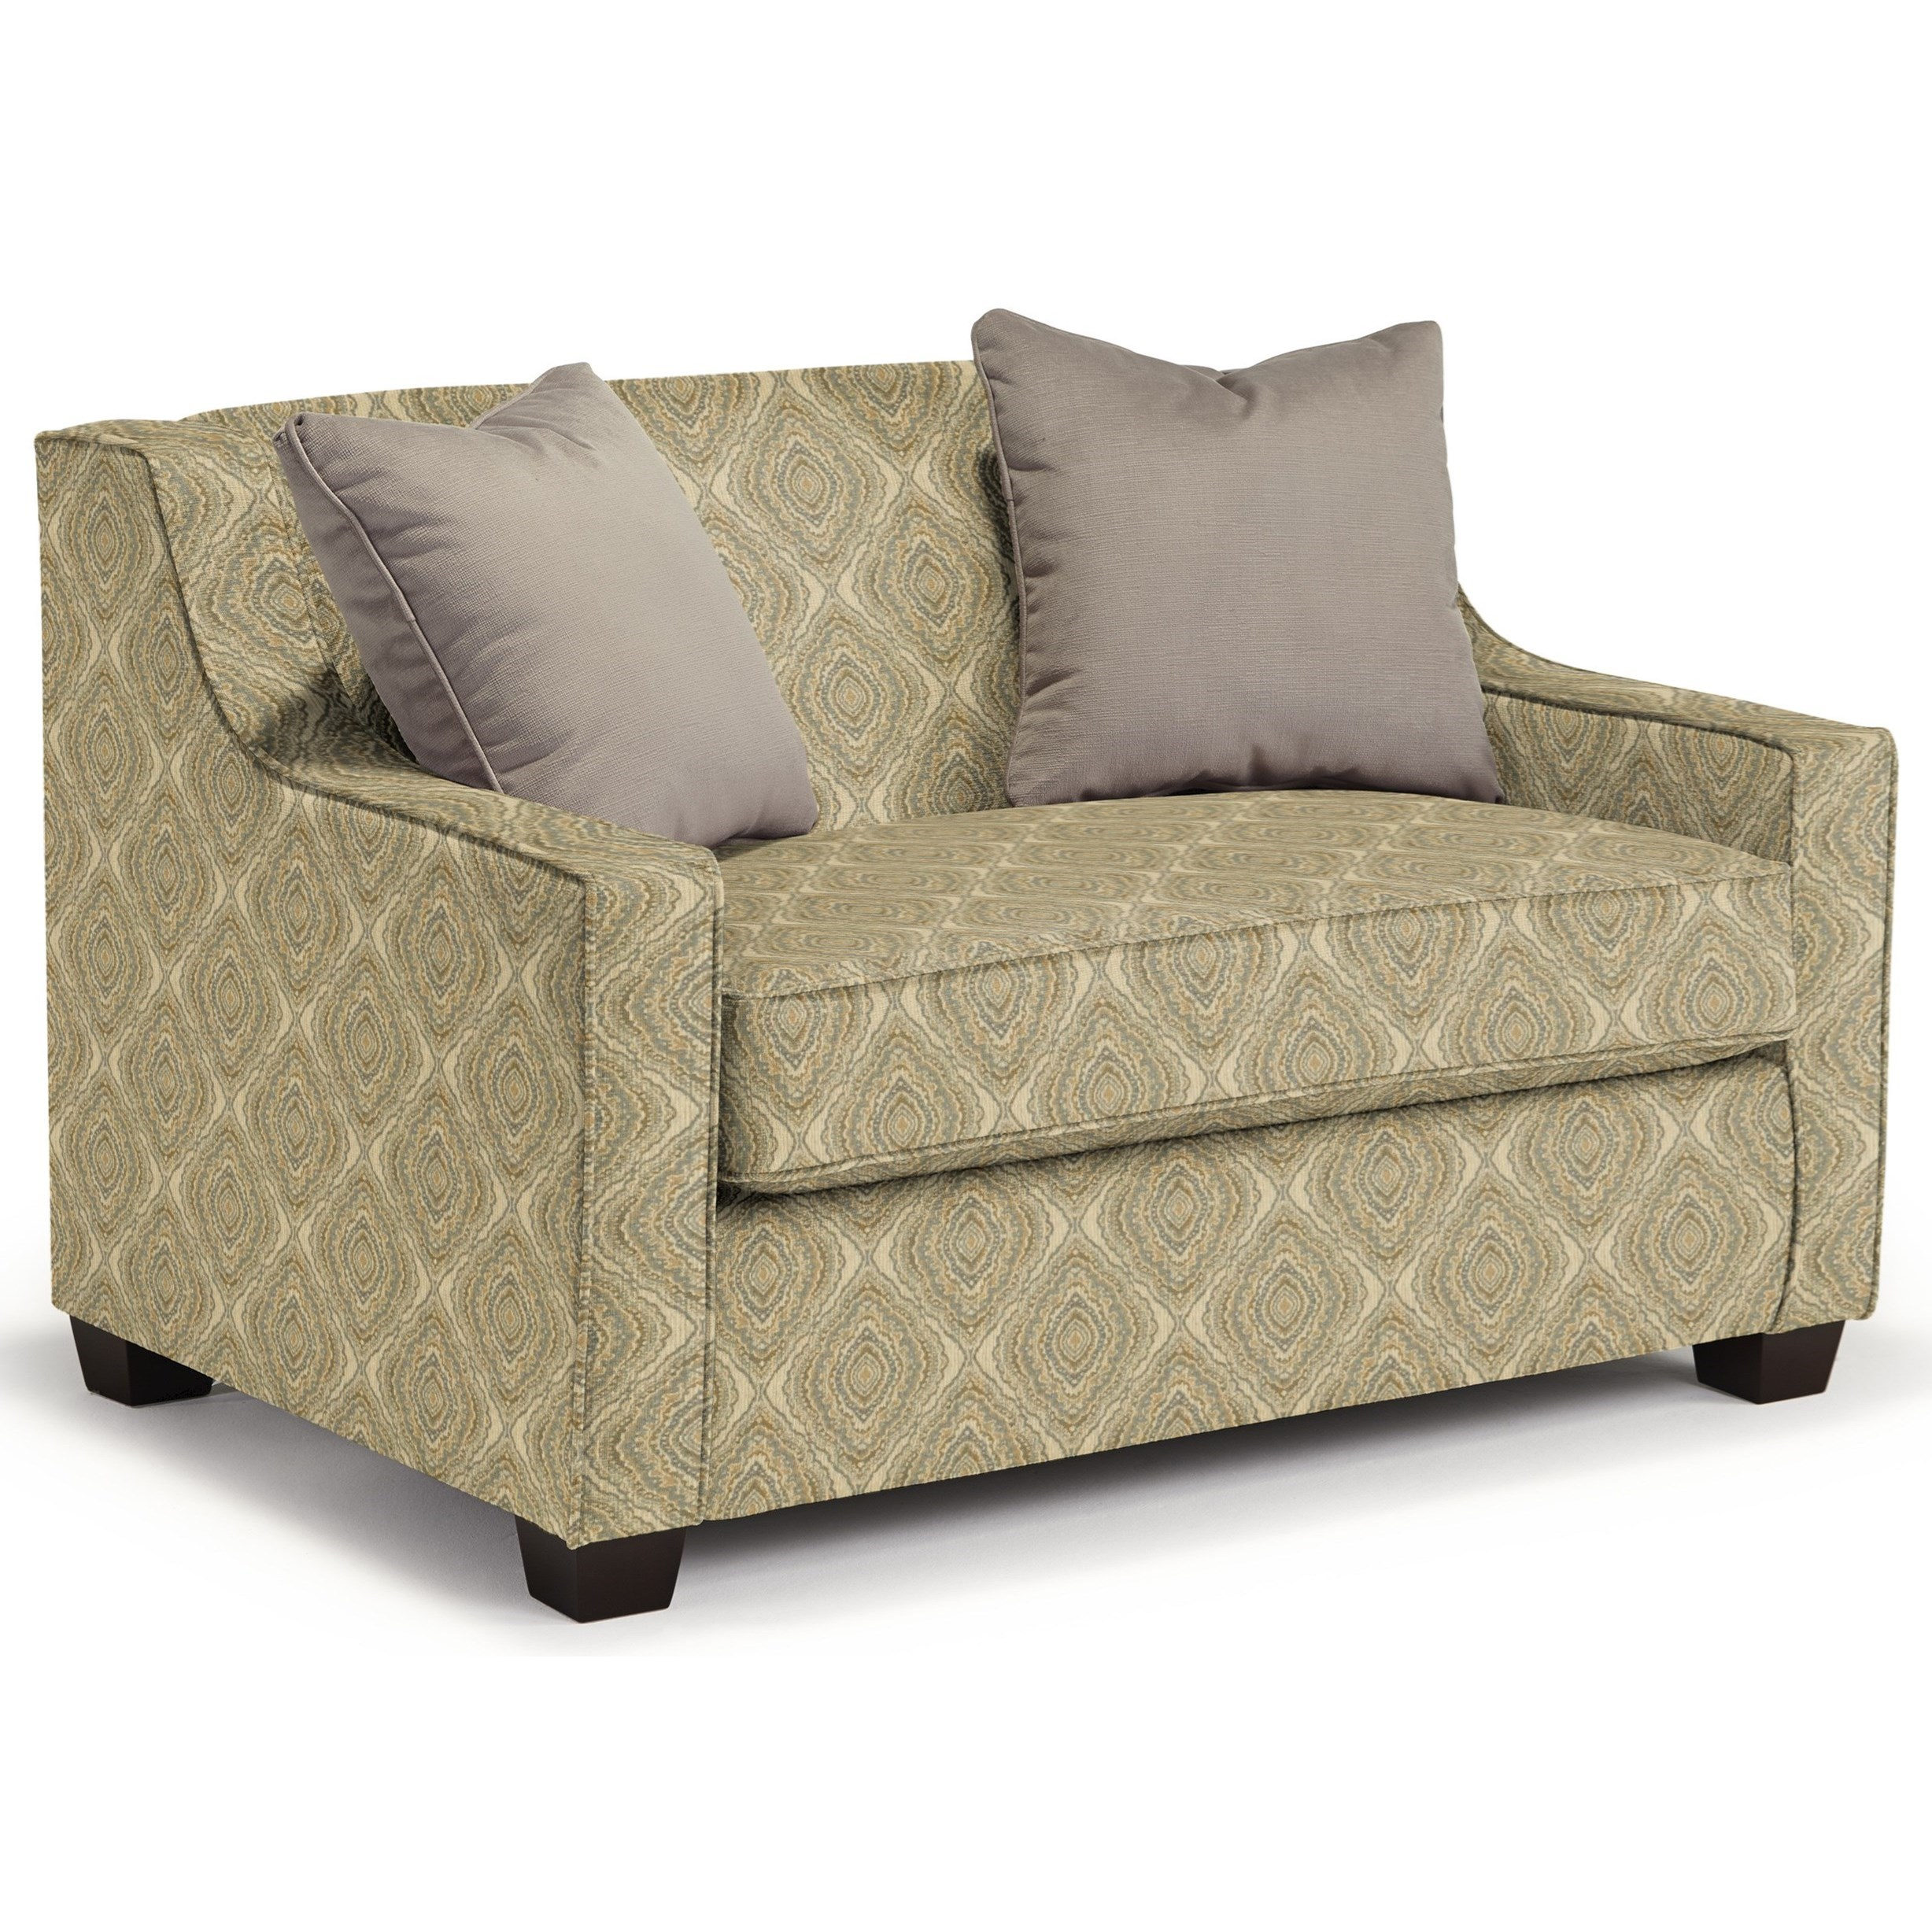 Marinette Twin Sleeper Chair by Best Home Furnishings at Lucas Furniture & Mattress